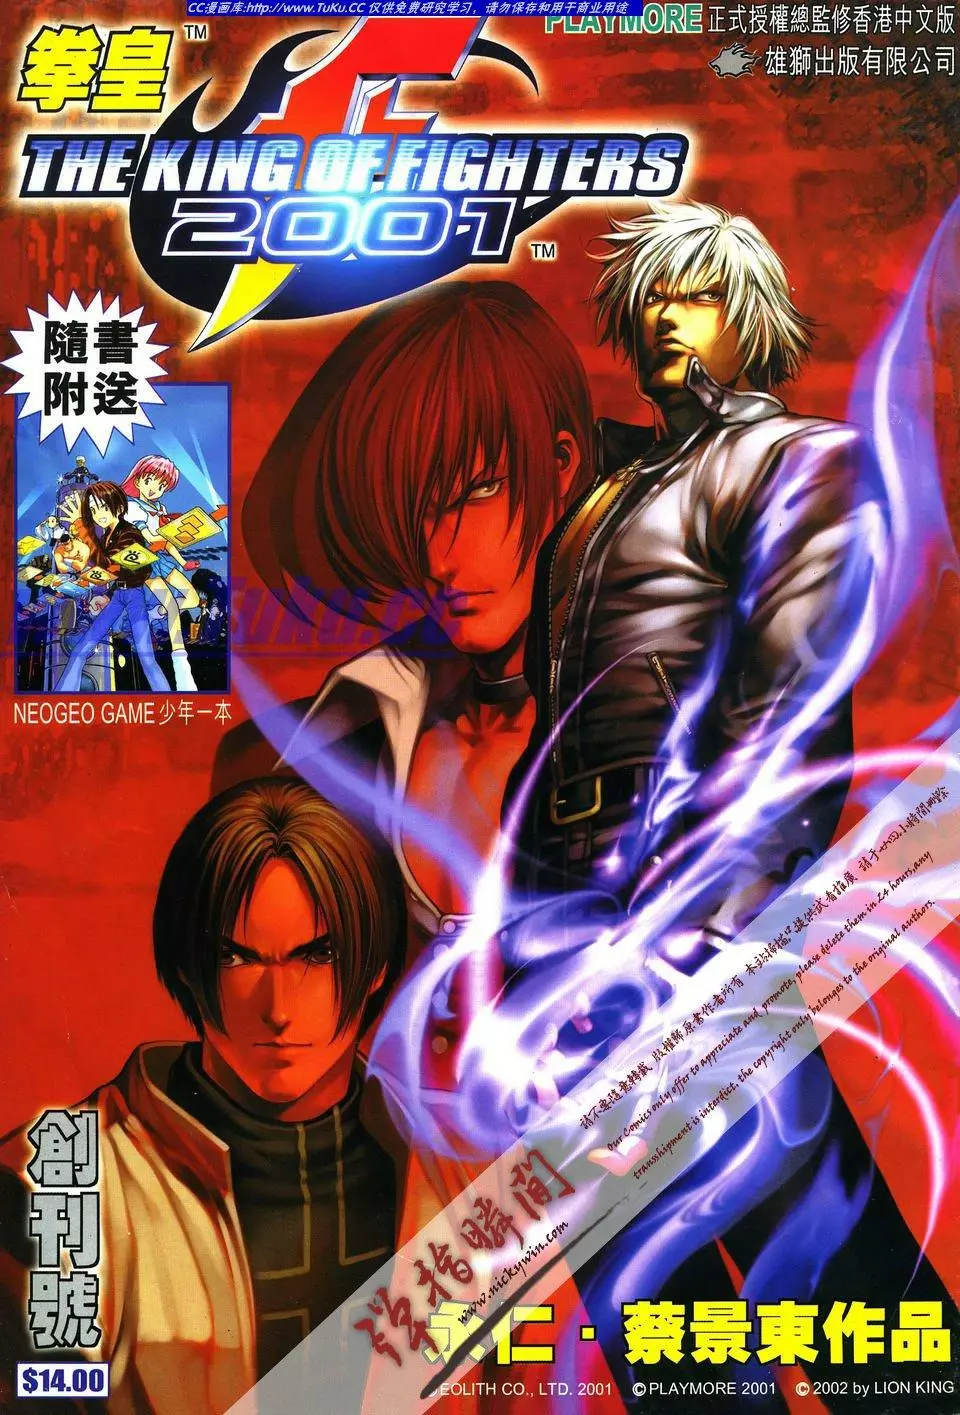 The King of Fighters 2001 (Manhua)